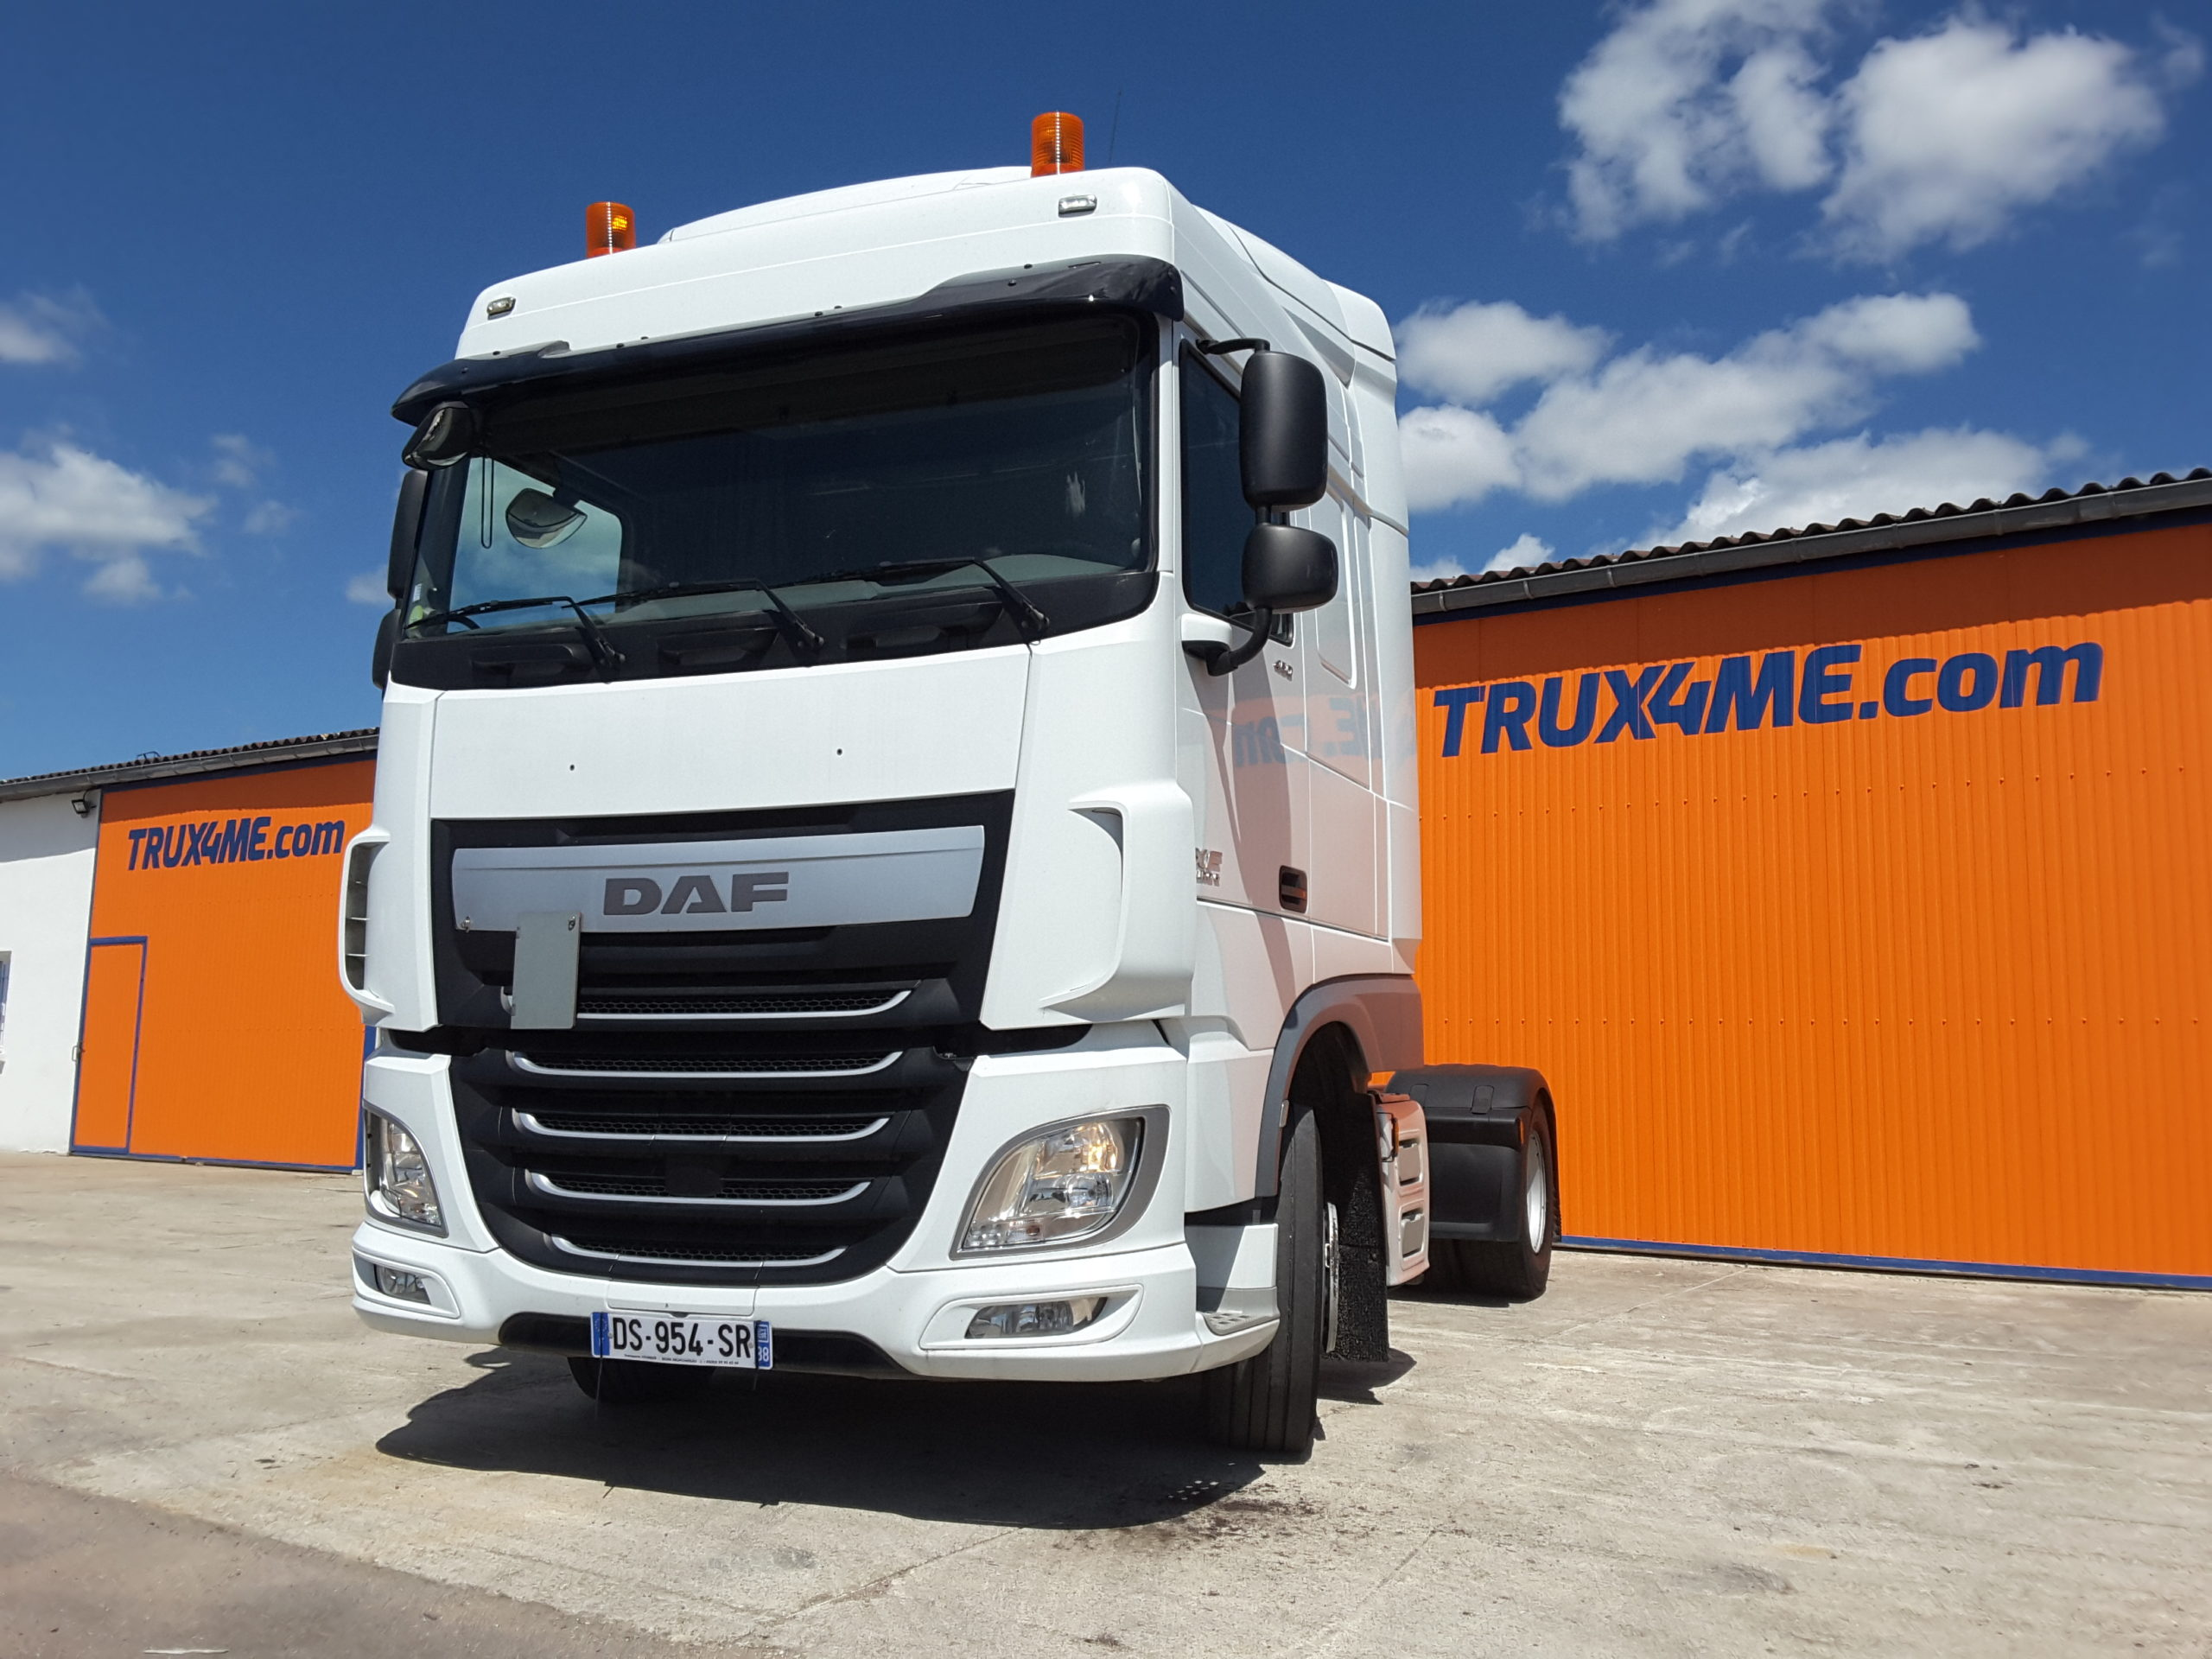 TRACTEUR DAF XF460 EURO 6 OCCASION